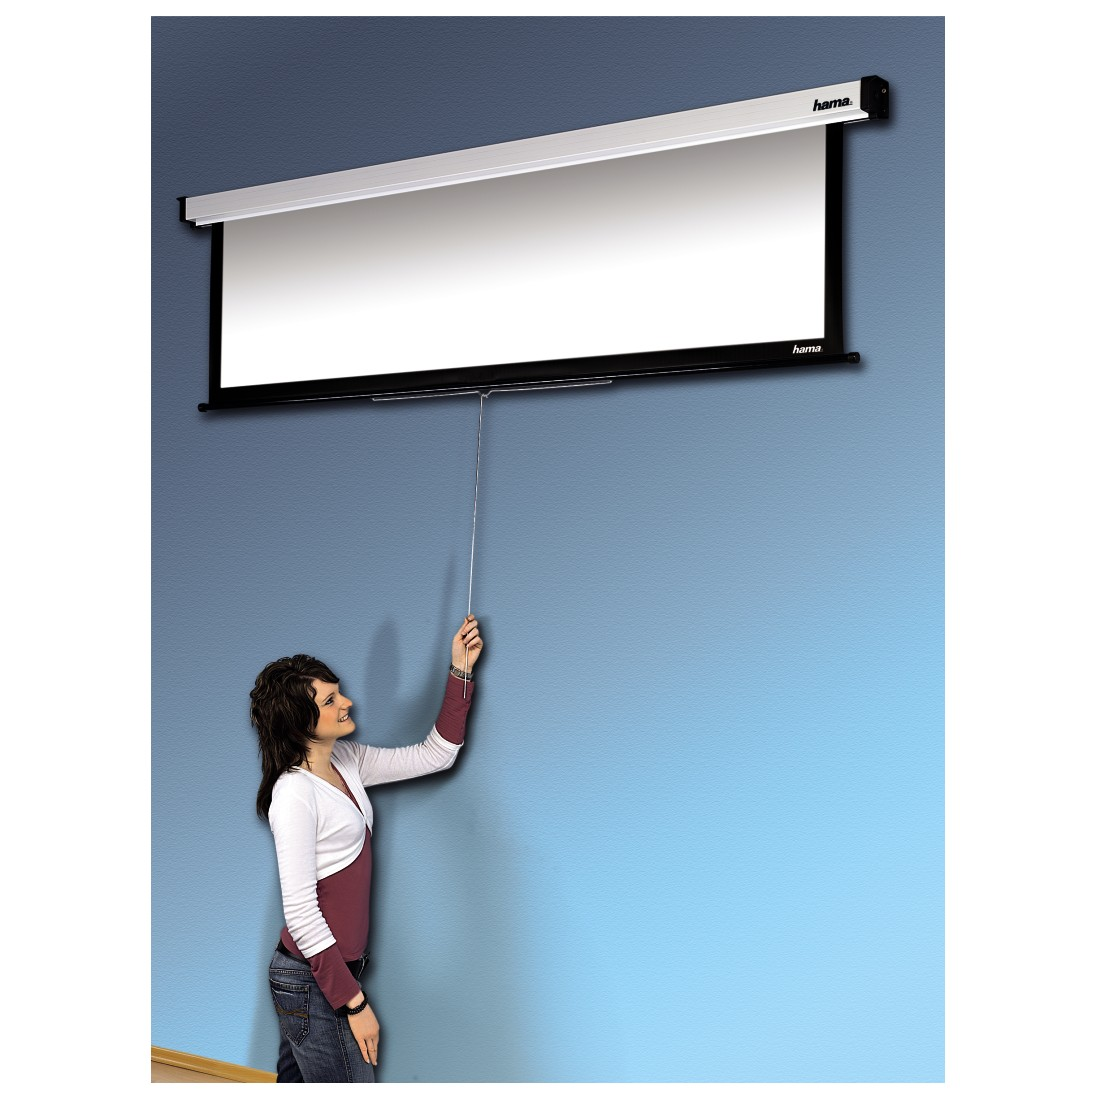 awx High-Res Appliance - Hama, Roller Projection Screen, 240 x 195 cm, 4:3